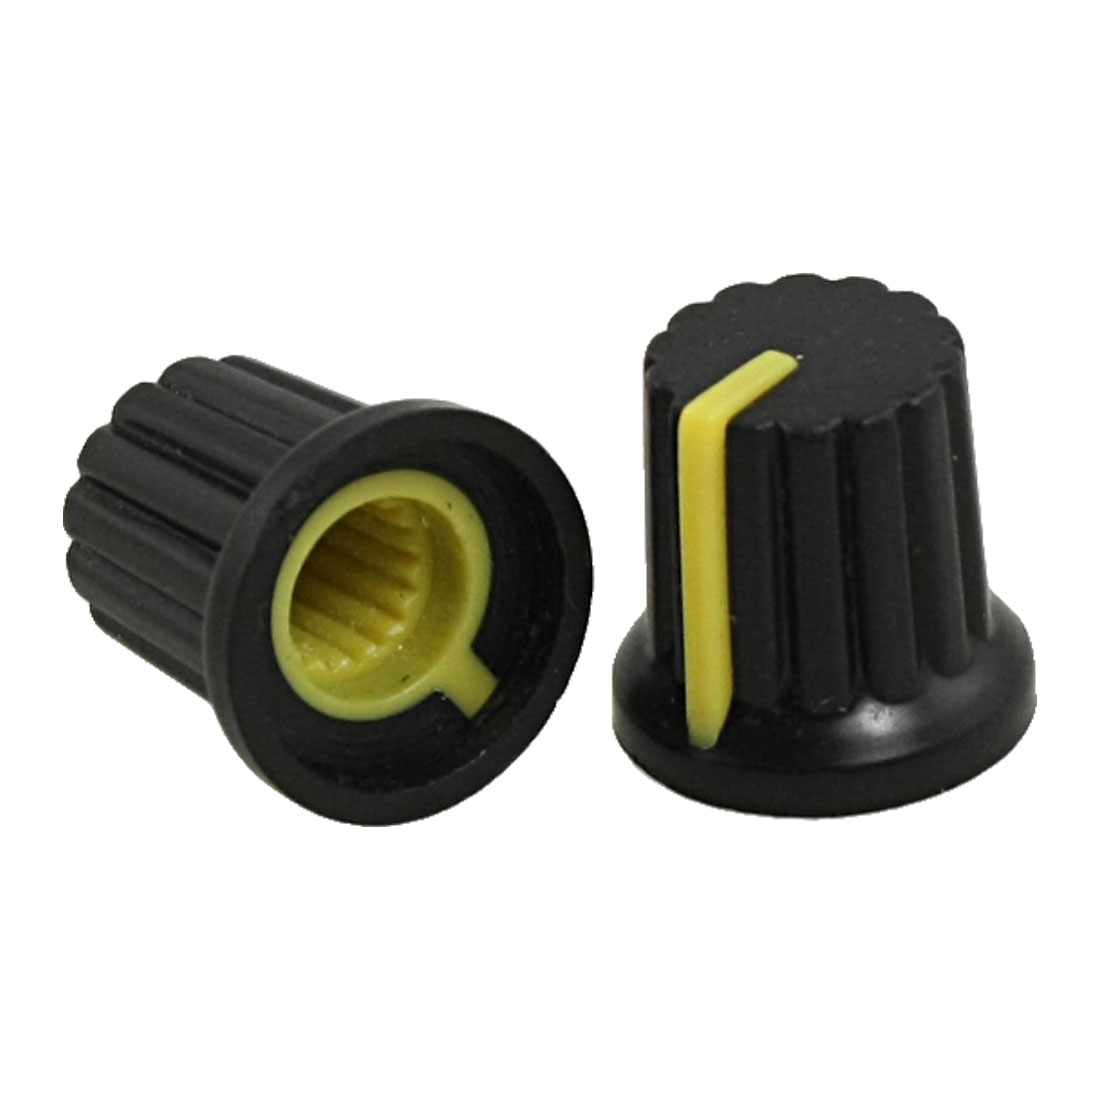 5 x Black Plastic Control Knobs w Yellow Mark for Potentiometer Pot